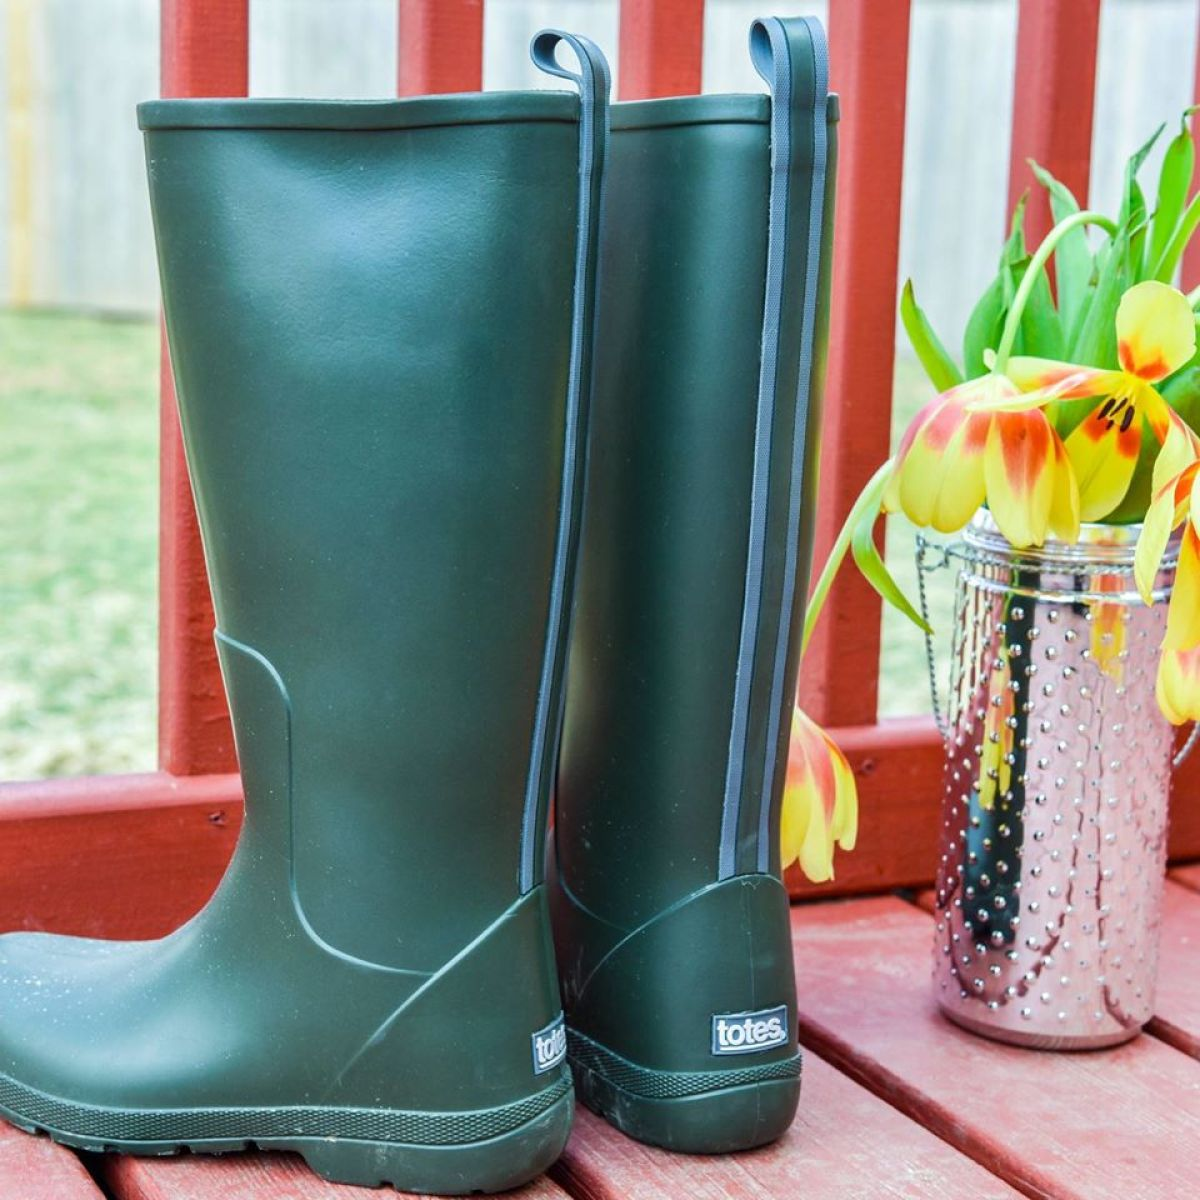 Cirrus Claire Rain Boots placed next to garden tools